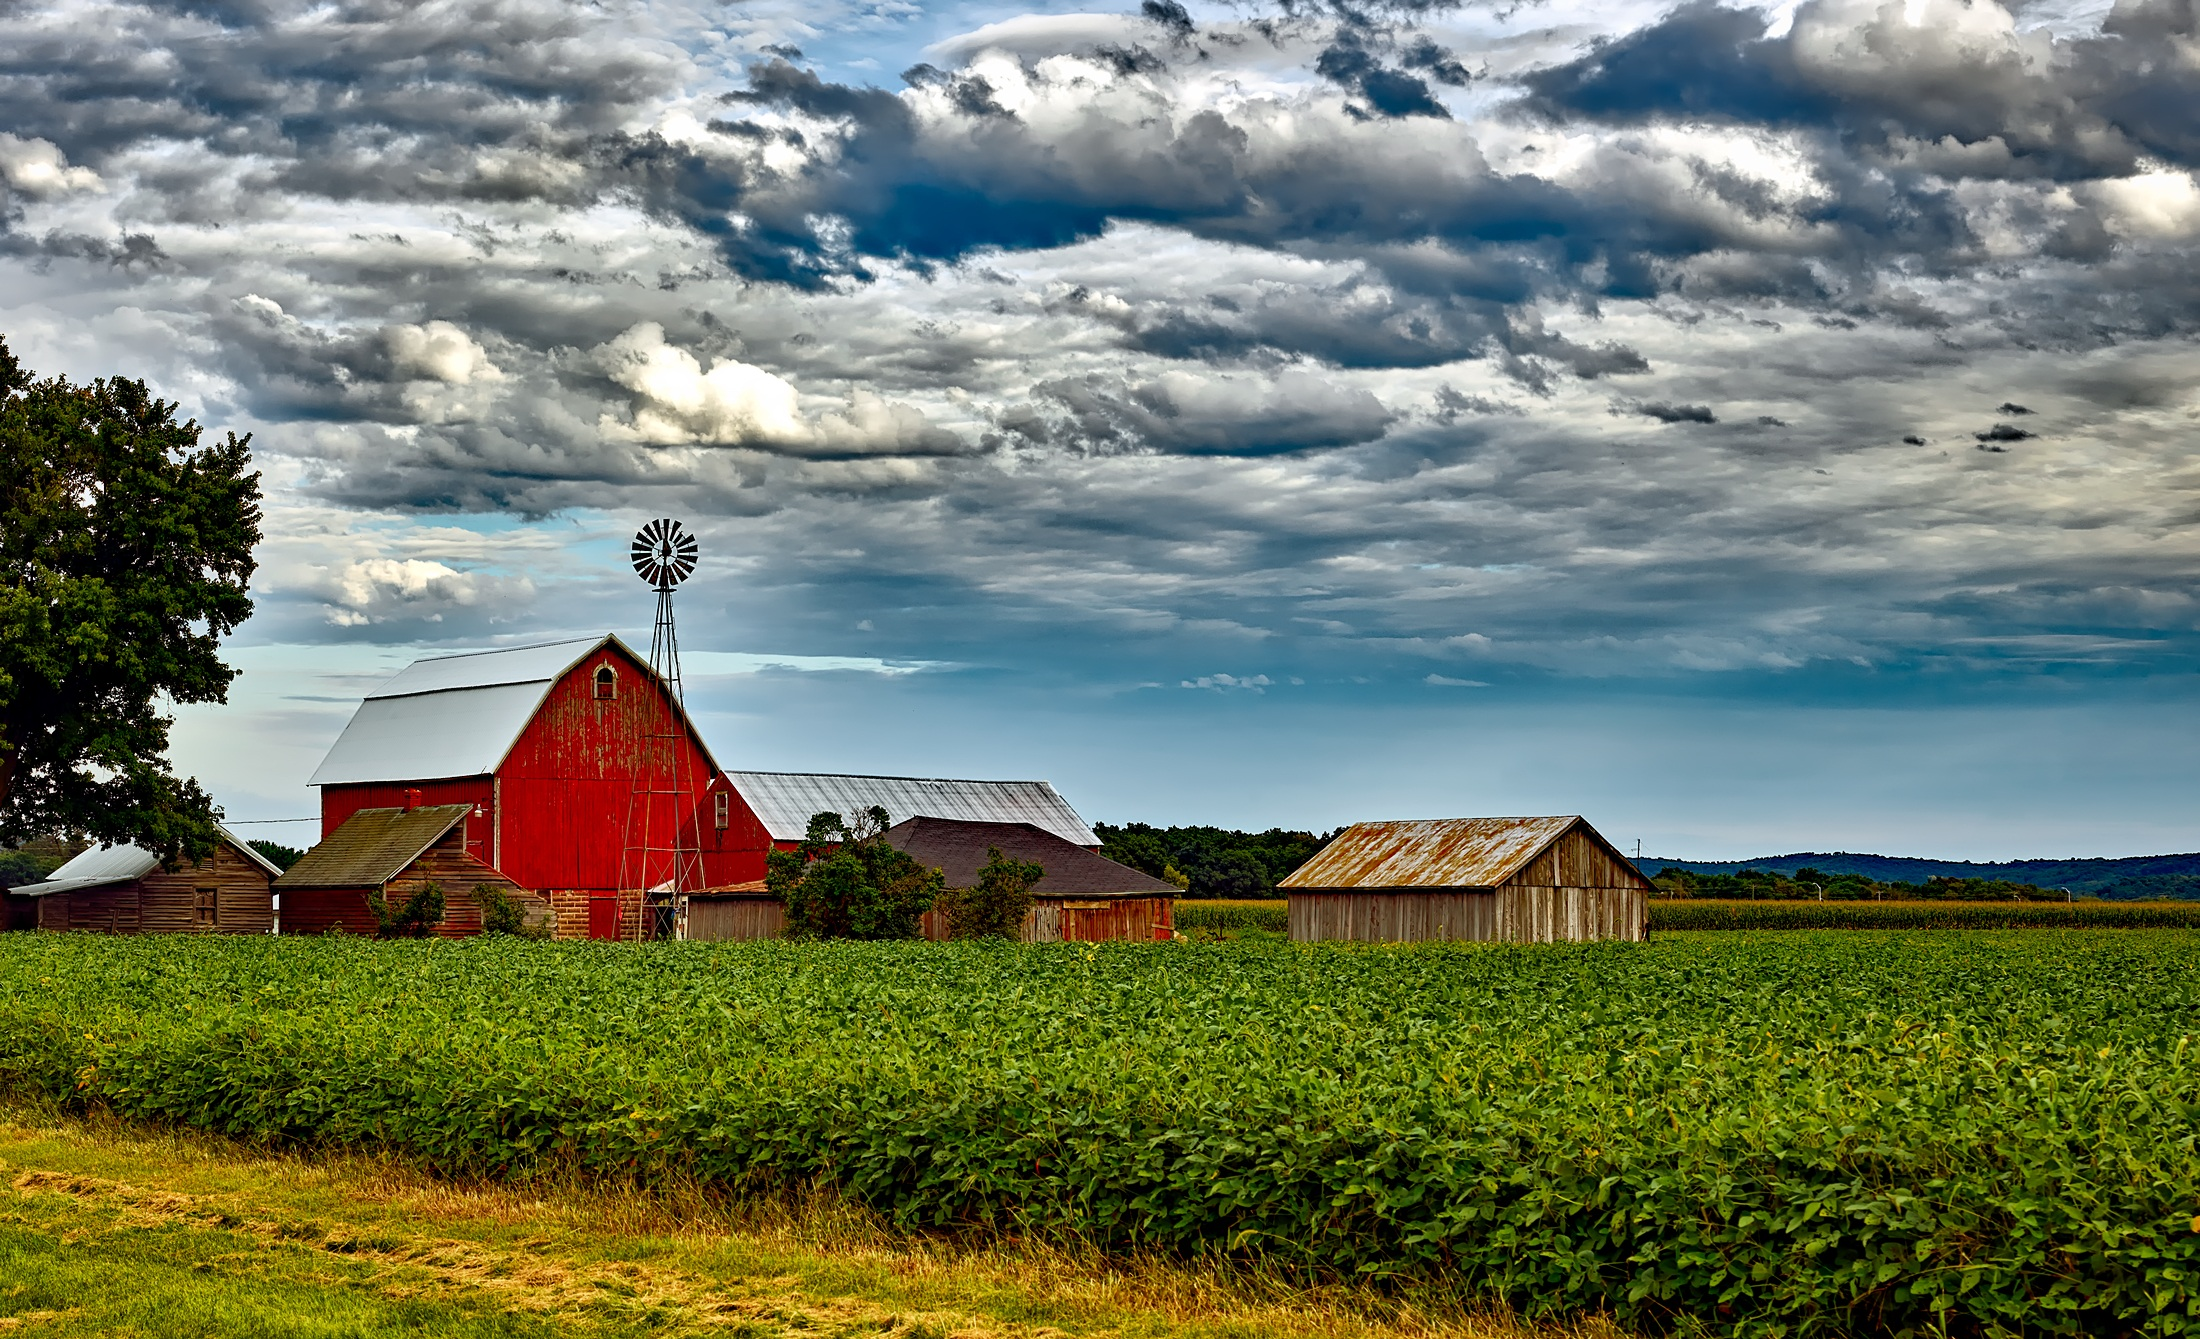 Houses In Farm Against Cloudy Sky · Free Stock Photo